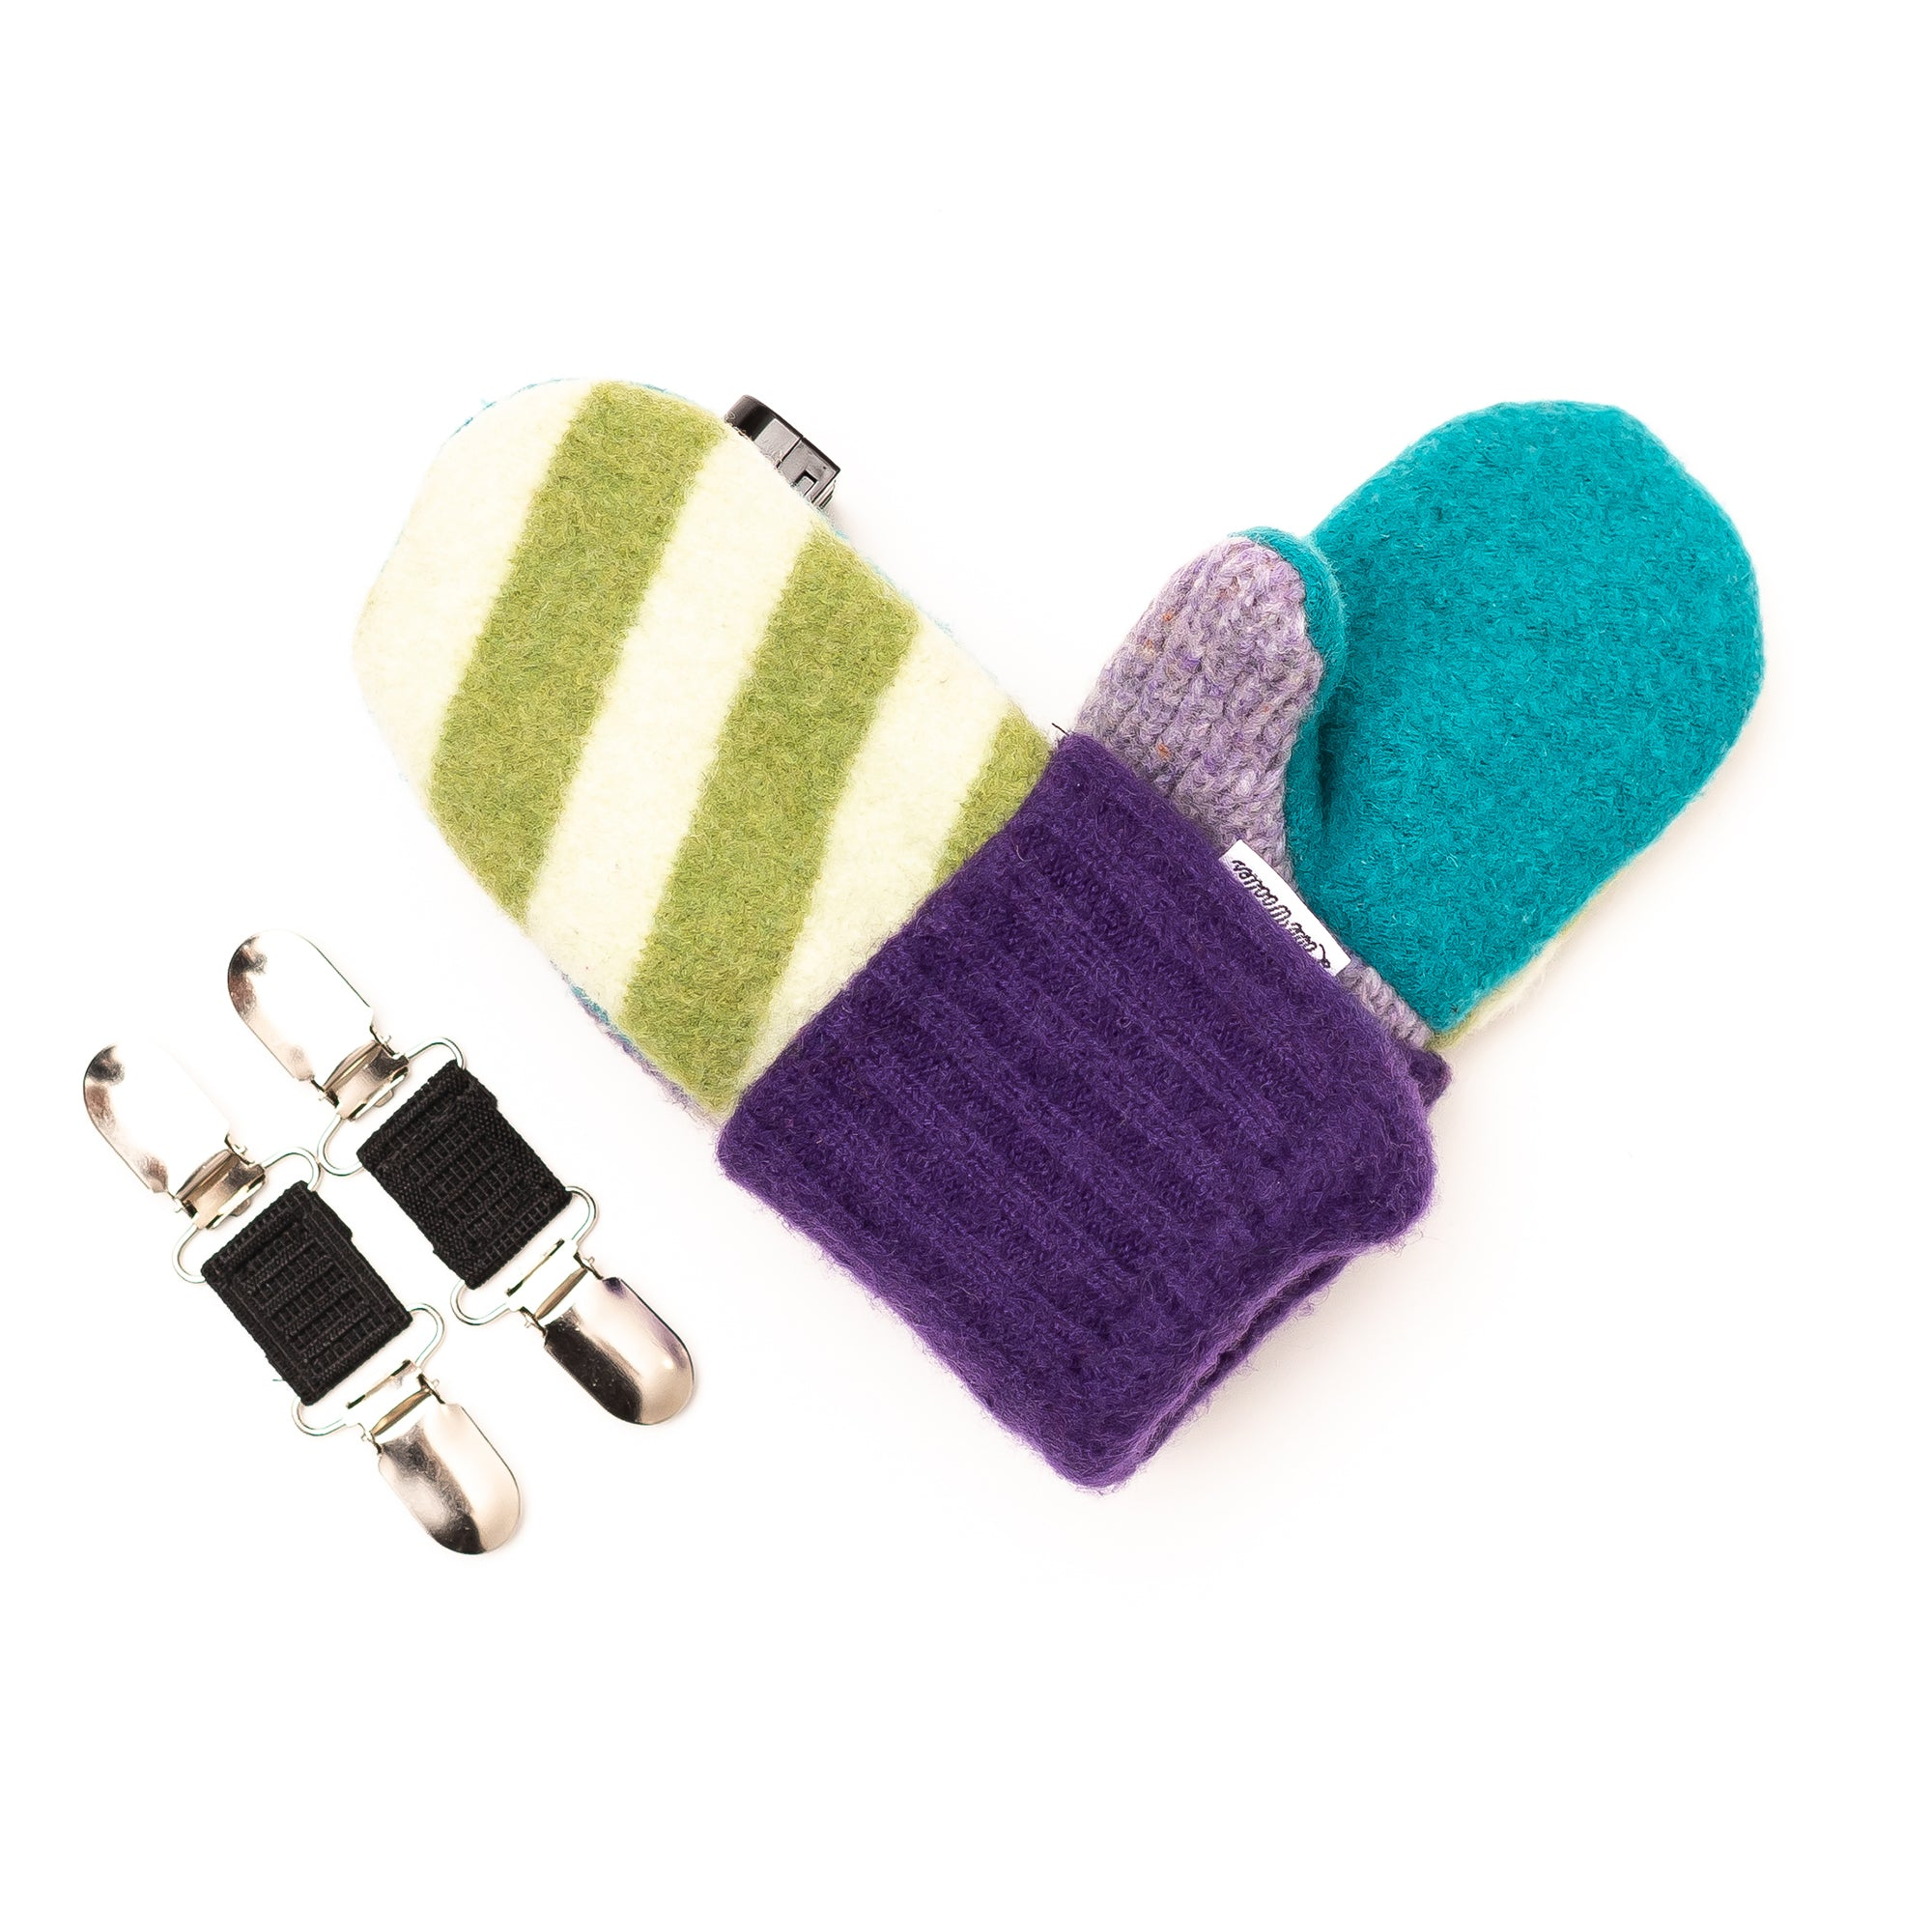 Small Kid's Wool Sweater Mittens | Grape Lime